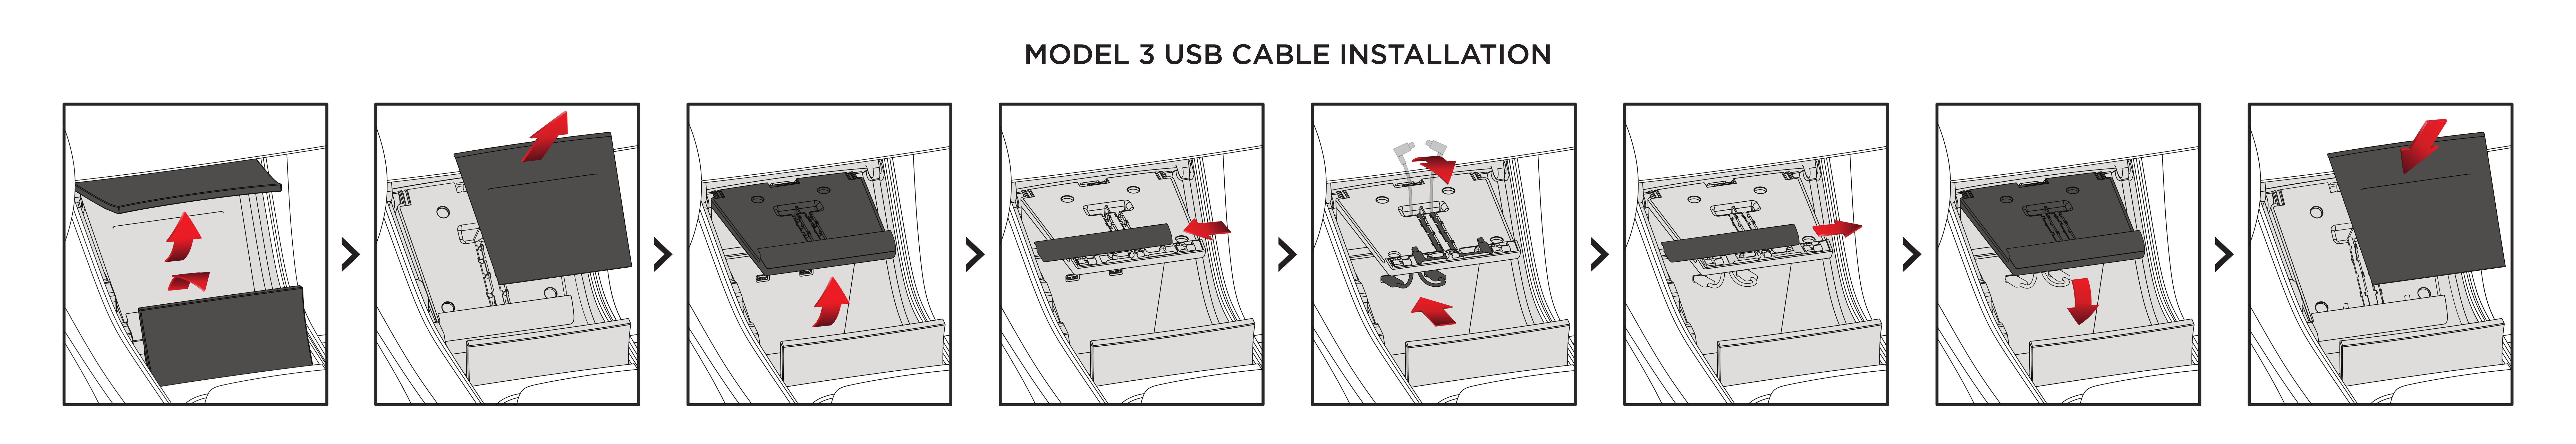 Model 3 Phone Charging Cable - Lighting Usb Cable Wiring Diagram